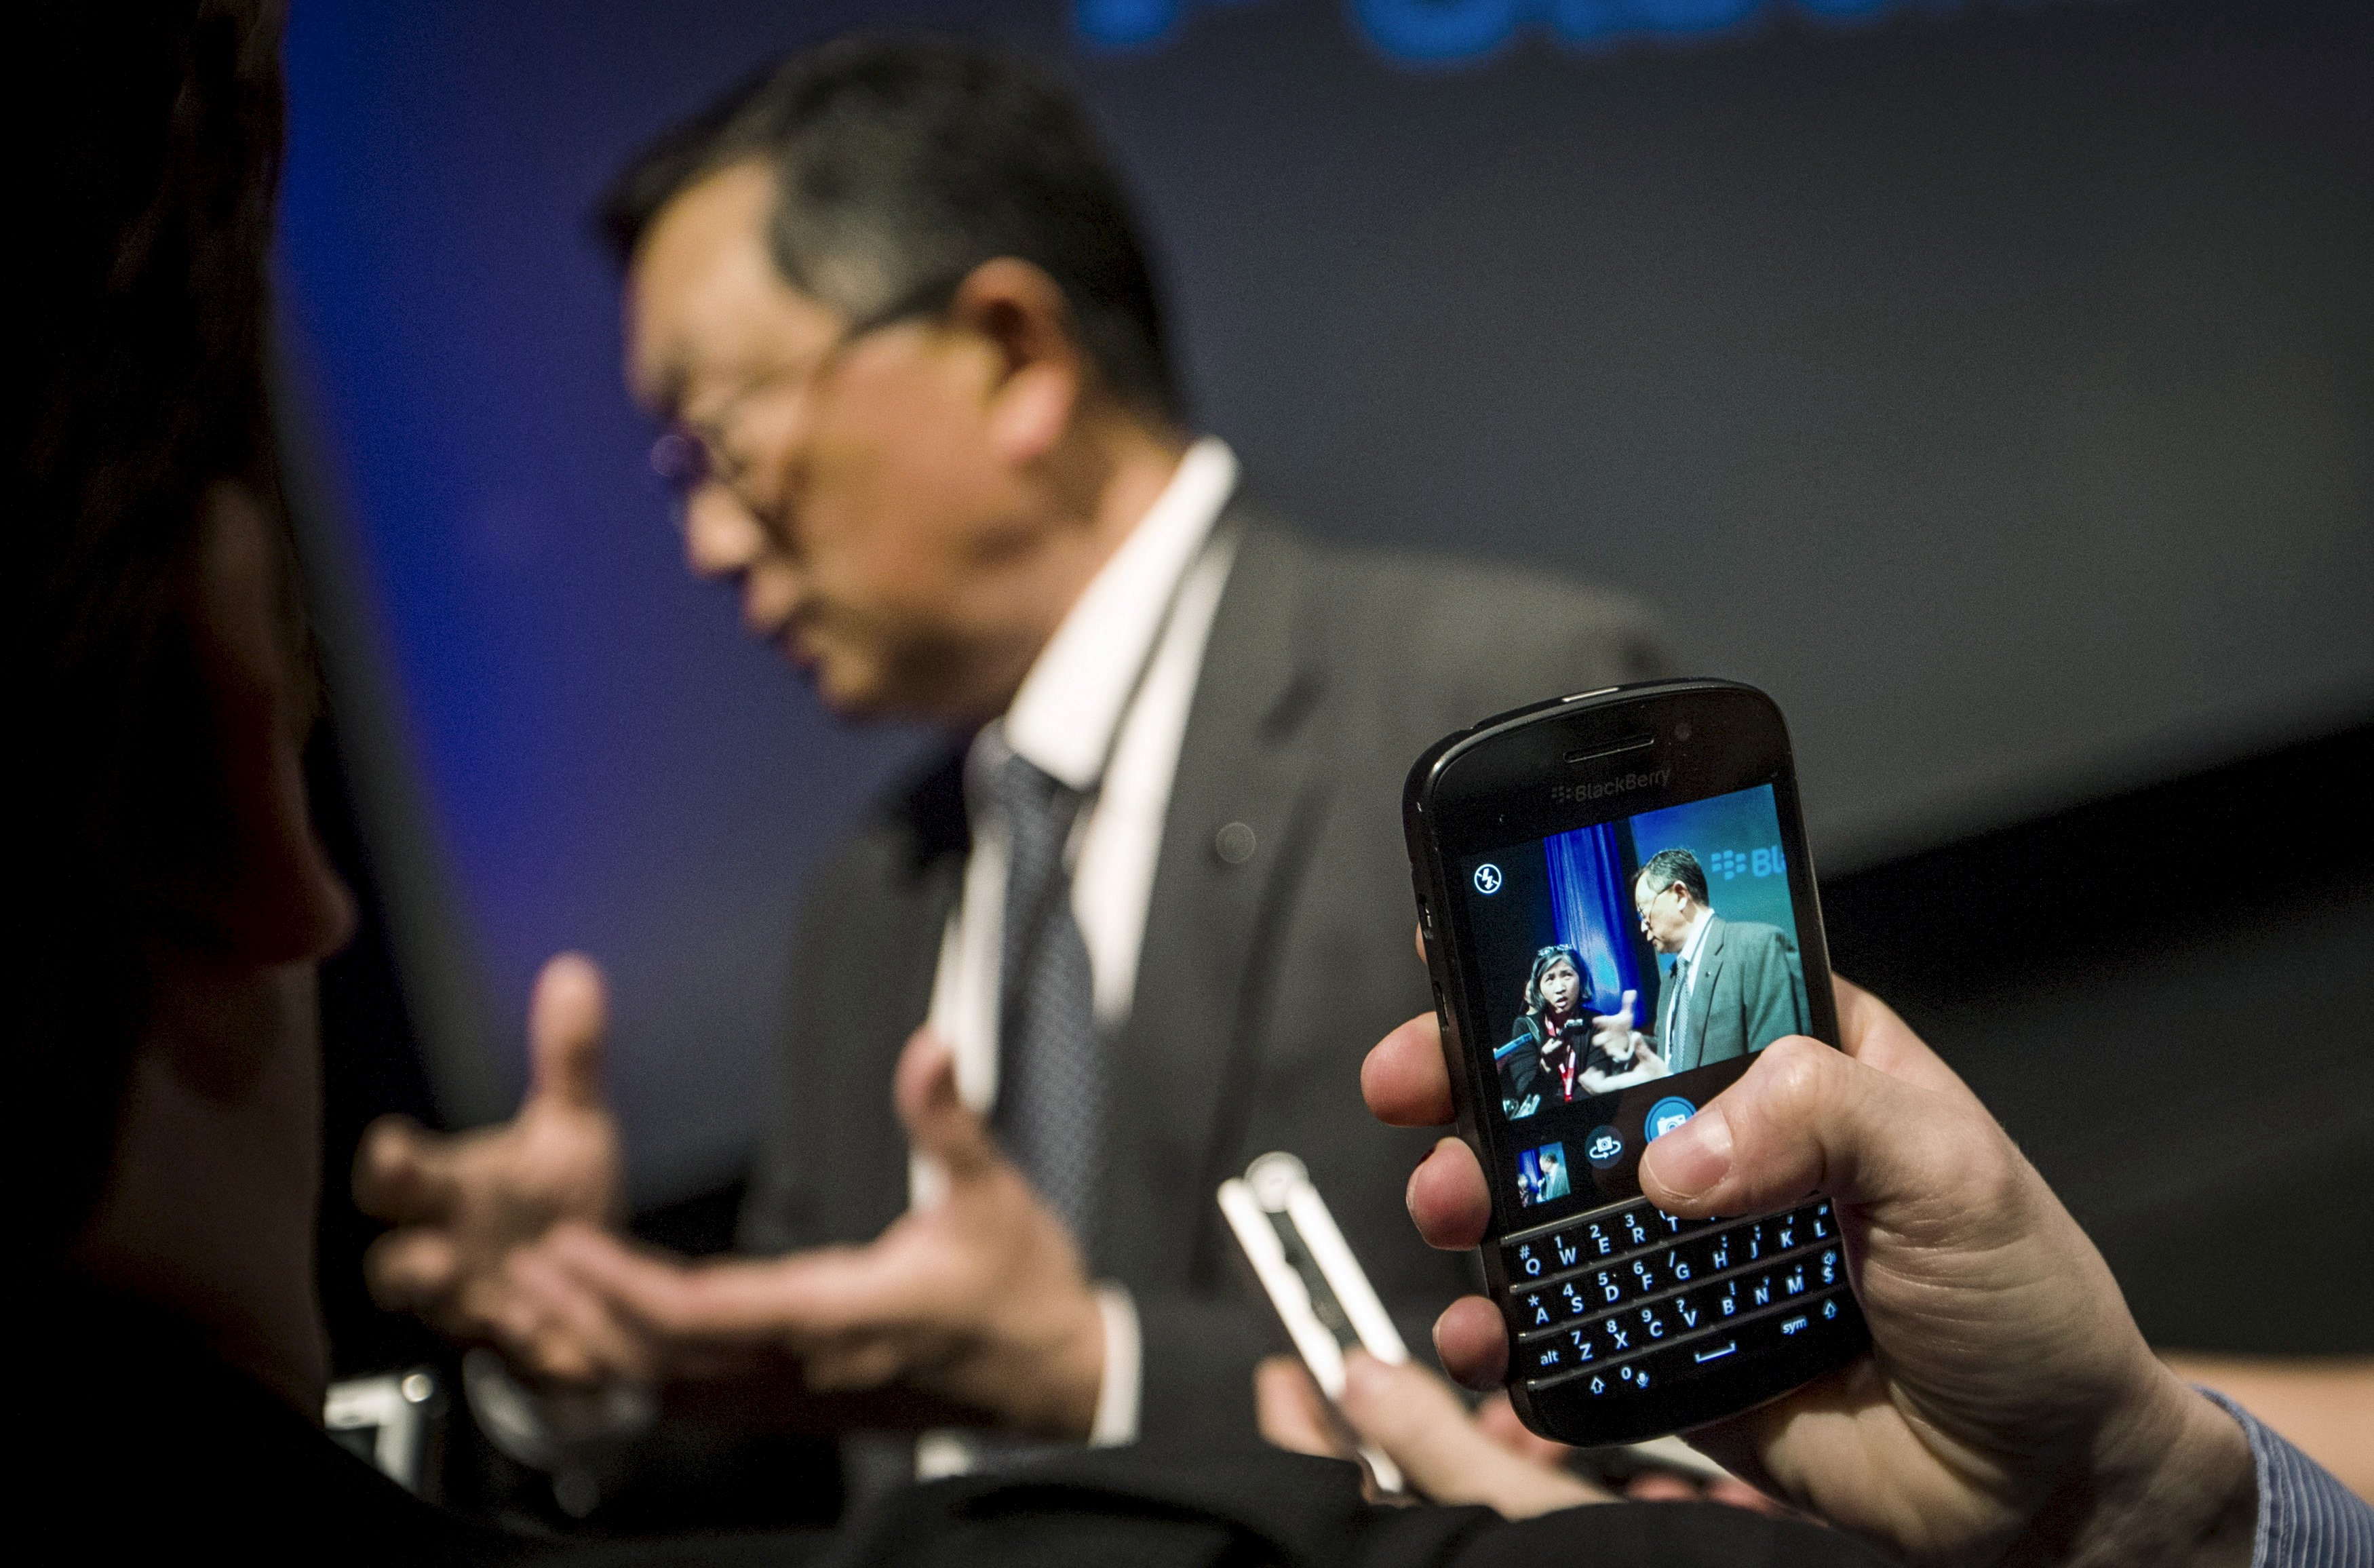 How BlackBerry stays relevant in the age of the iPhone